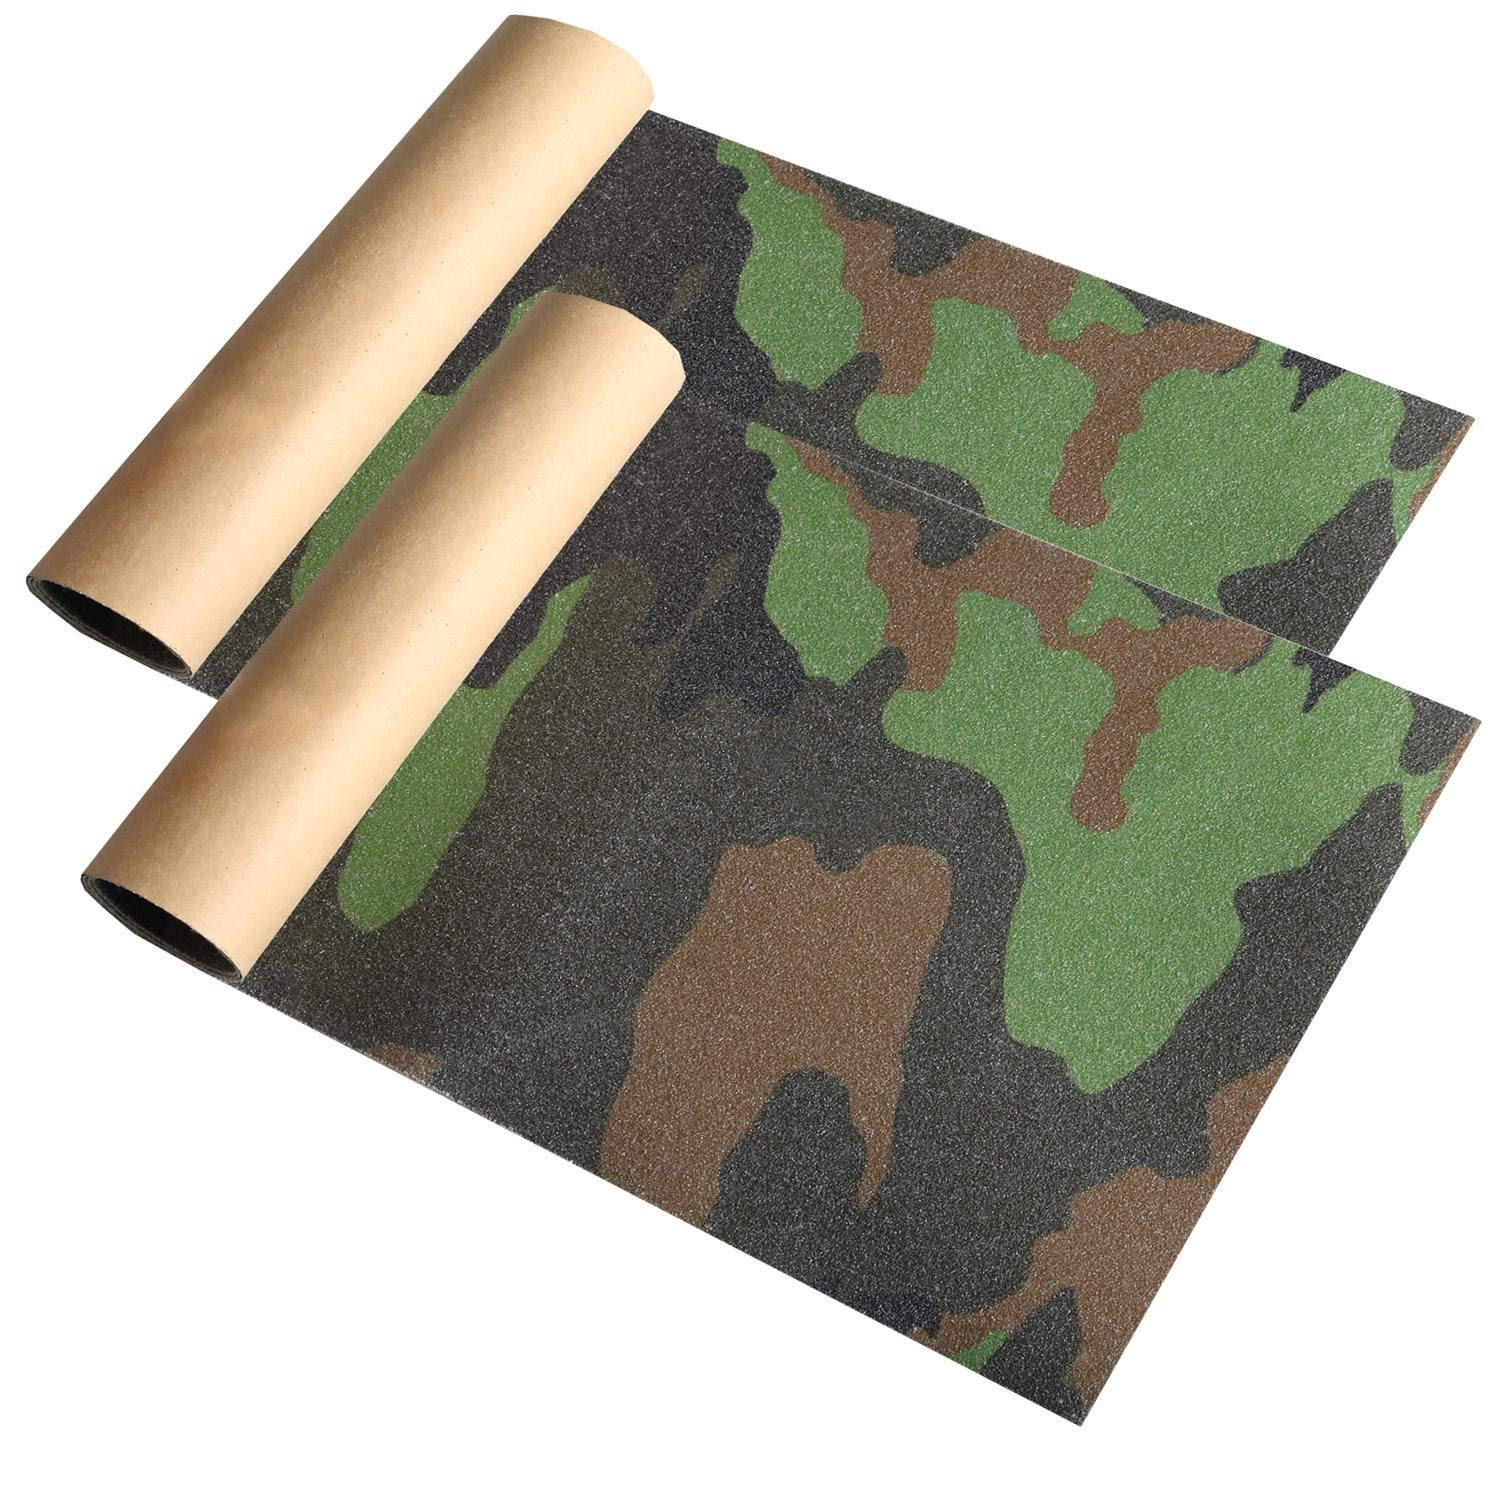 YIXKC Grip Tape Camouflage Mosquitoes Skateboard Griptape Sheet Easy to Apply Longboard Griptape 9 x 33 Inch